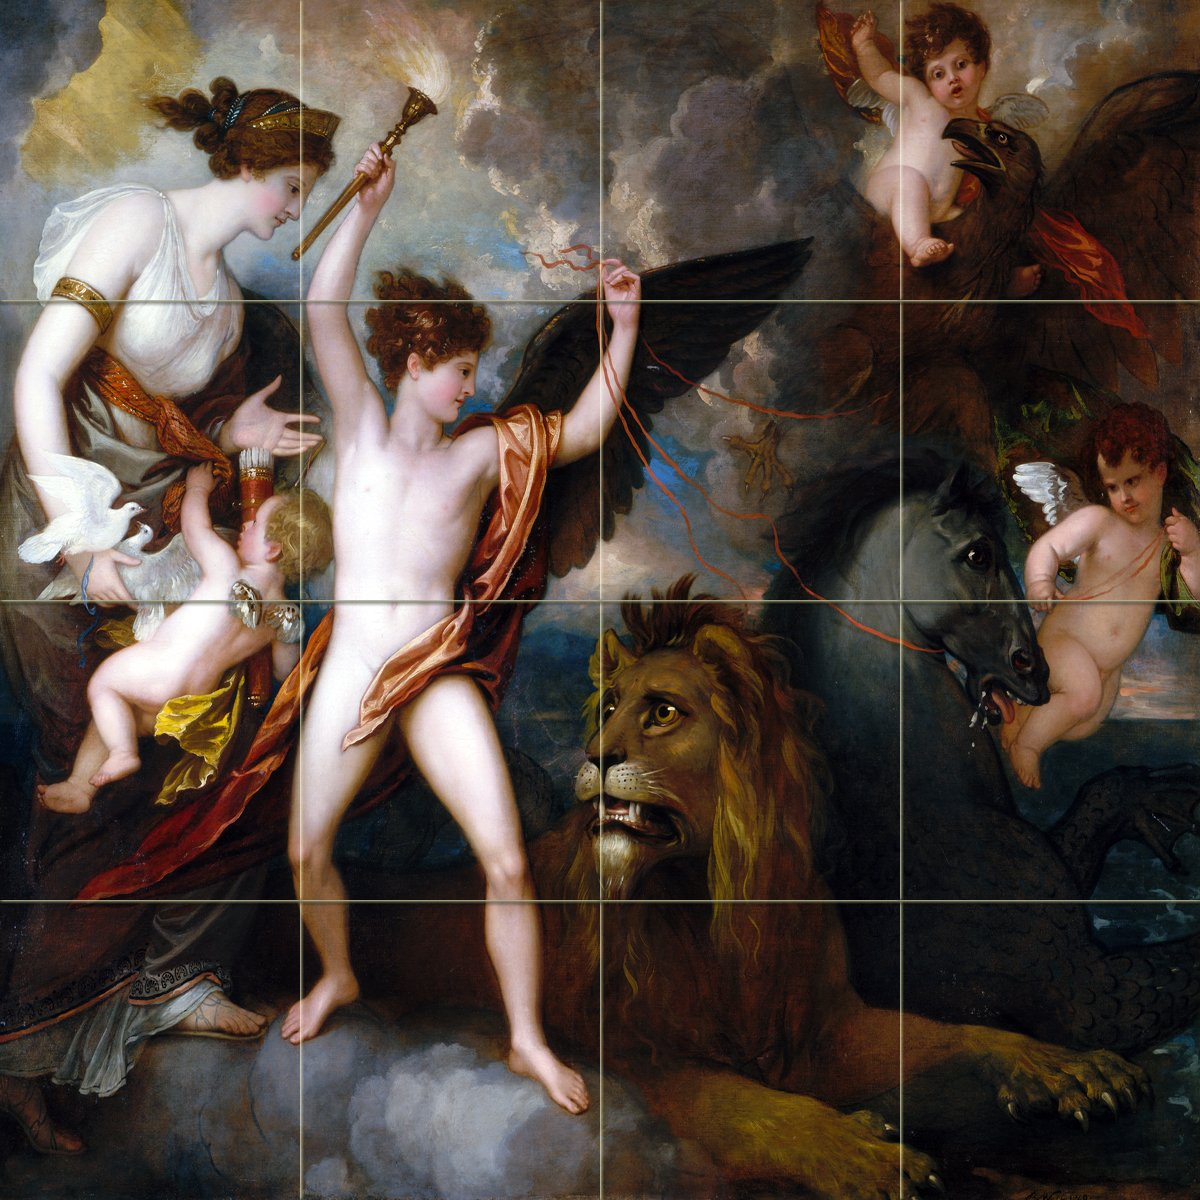 Baroque angels cupids lion horse by Benjamin West PRA Tile Mural Kitchen Bathroom Wall Backsplash Behind Stove Range Sink Splashback 4x4 6'' Rialto